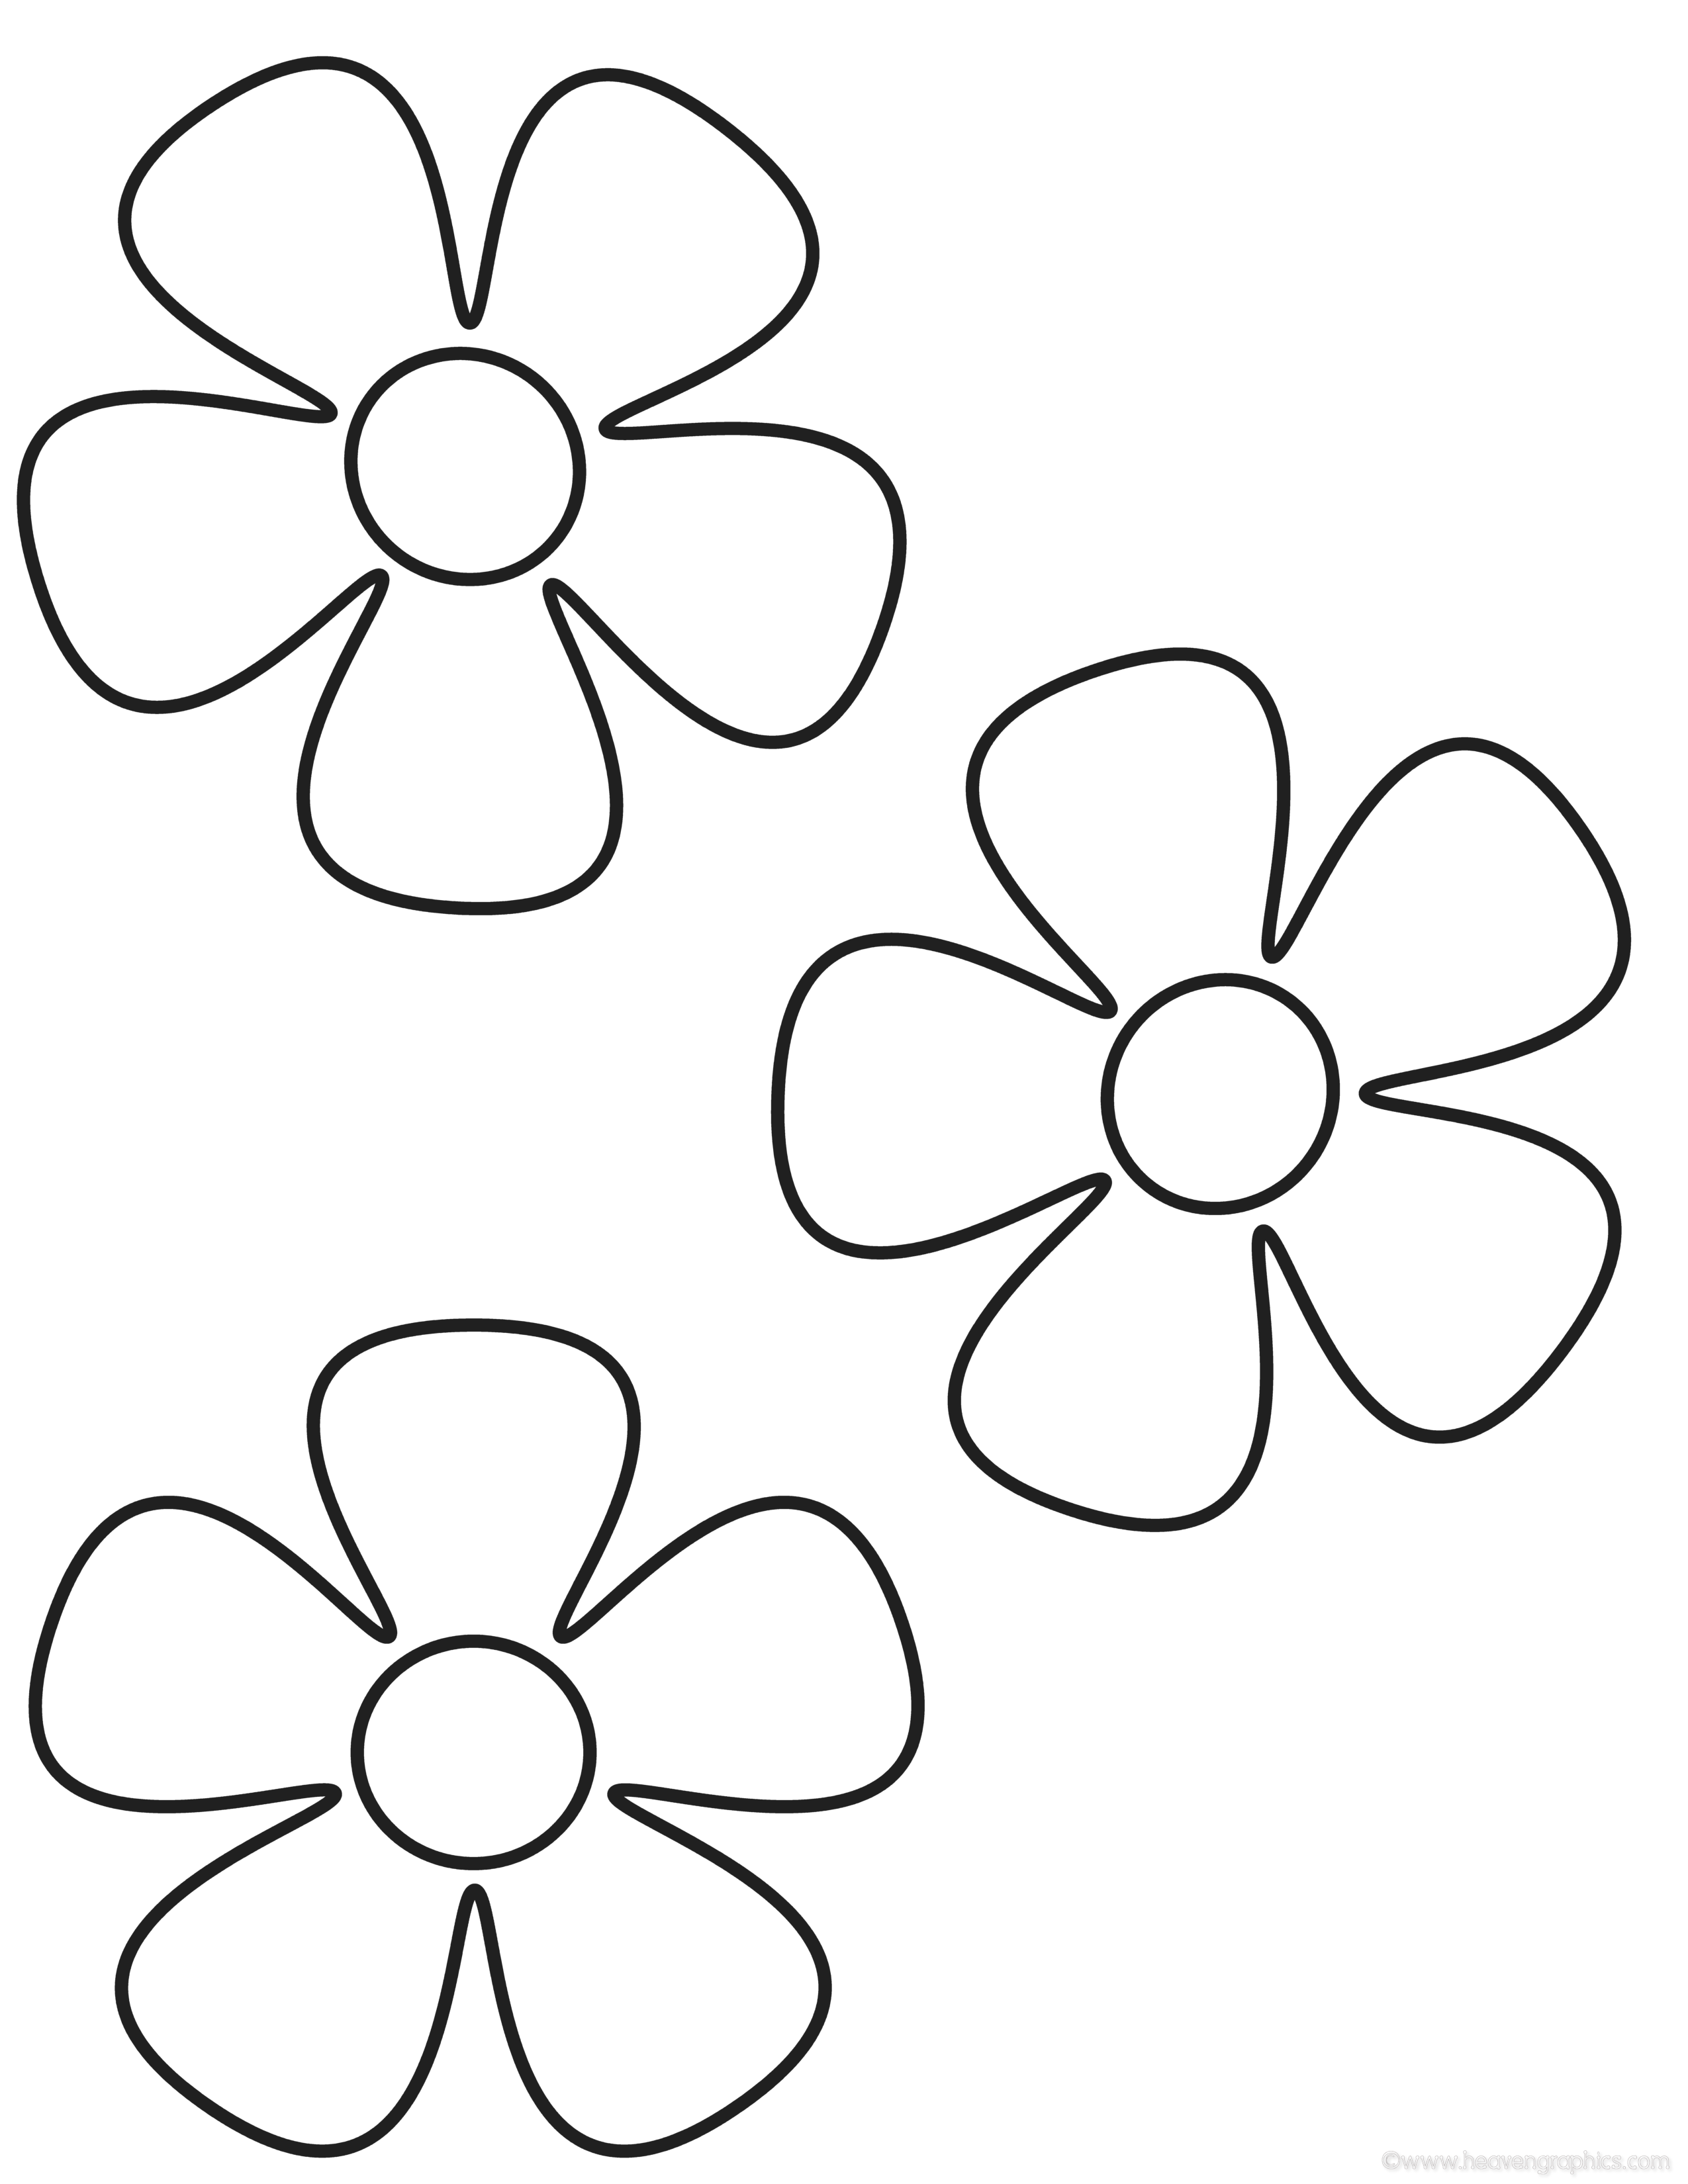 flower templates for coloring flower cut out templates clipart best templates for coloring flower